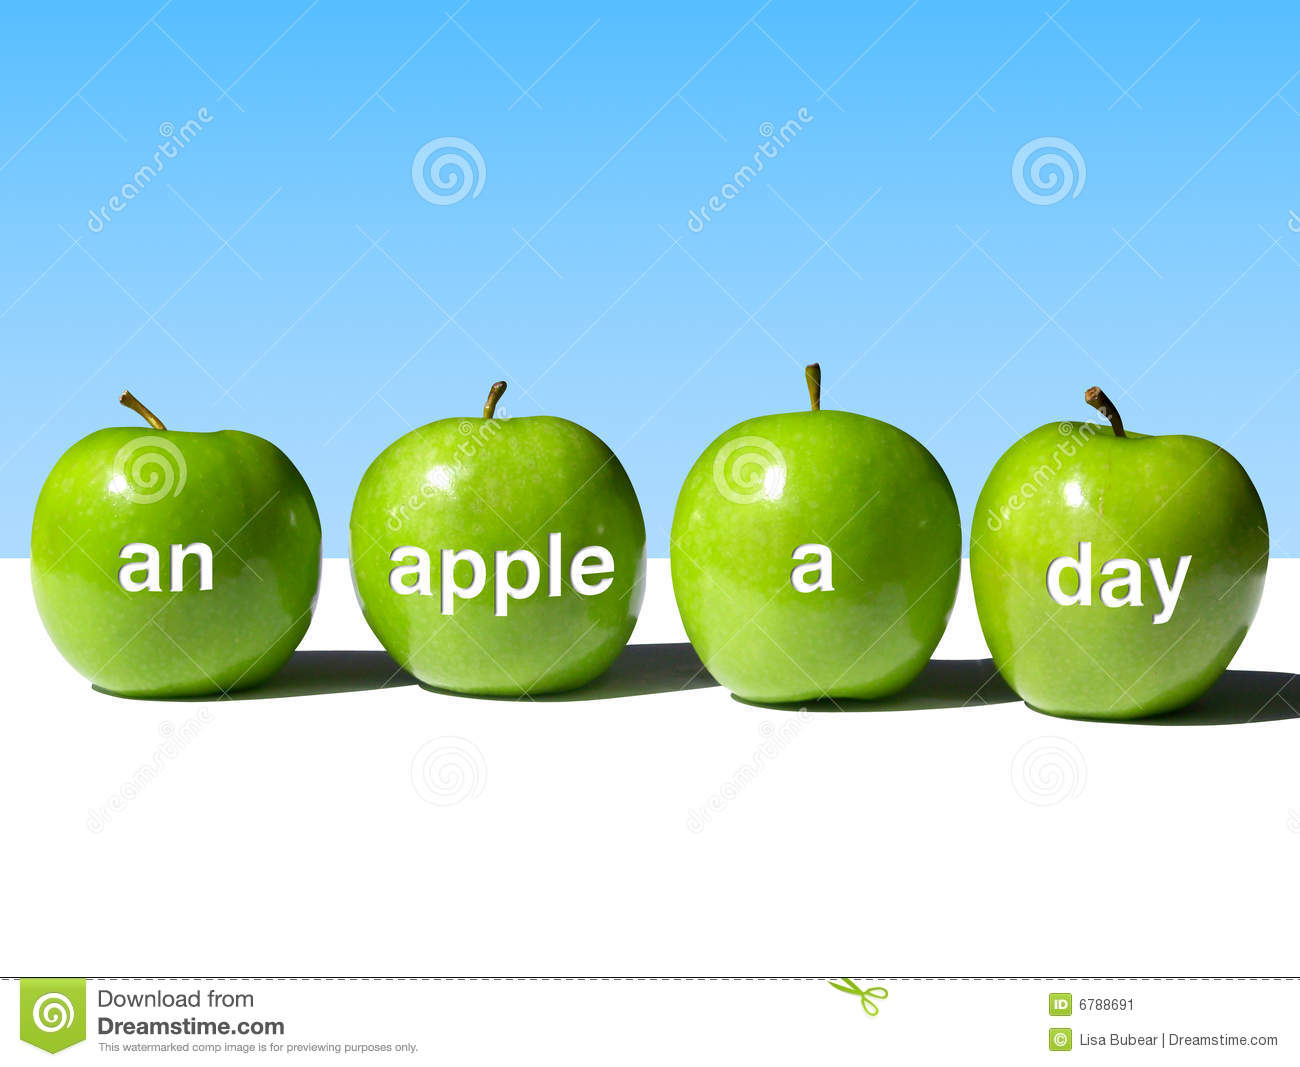 apple a day Learn about apple on cnet  companies will be expected to store user data locally and remove offensive posts from the internet within one day.